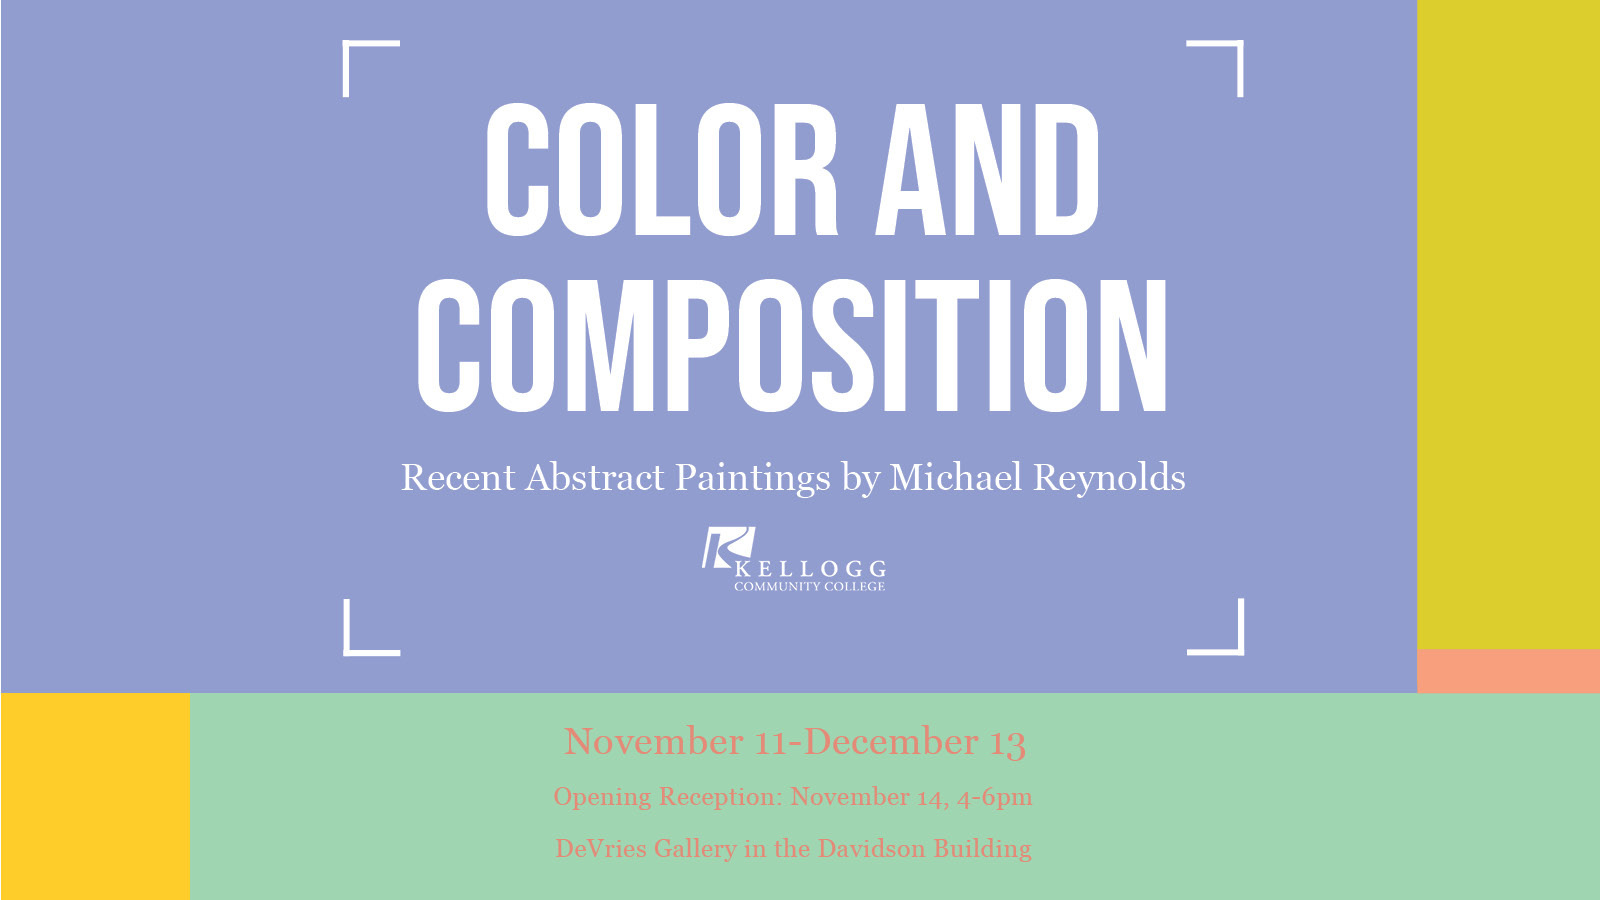 A text slide promoting Michael Reynolds exhibit on display in the DeVries Gallery through Dec. 13.